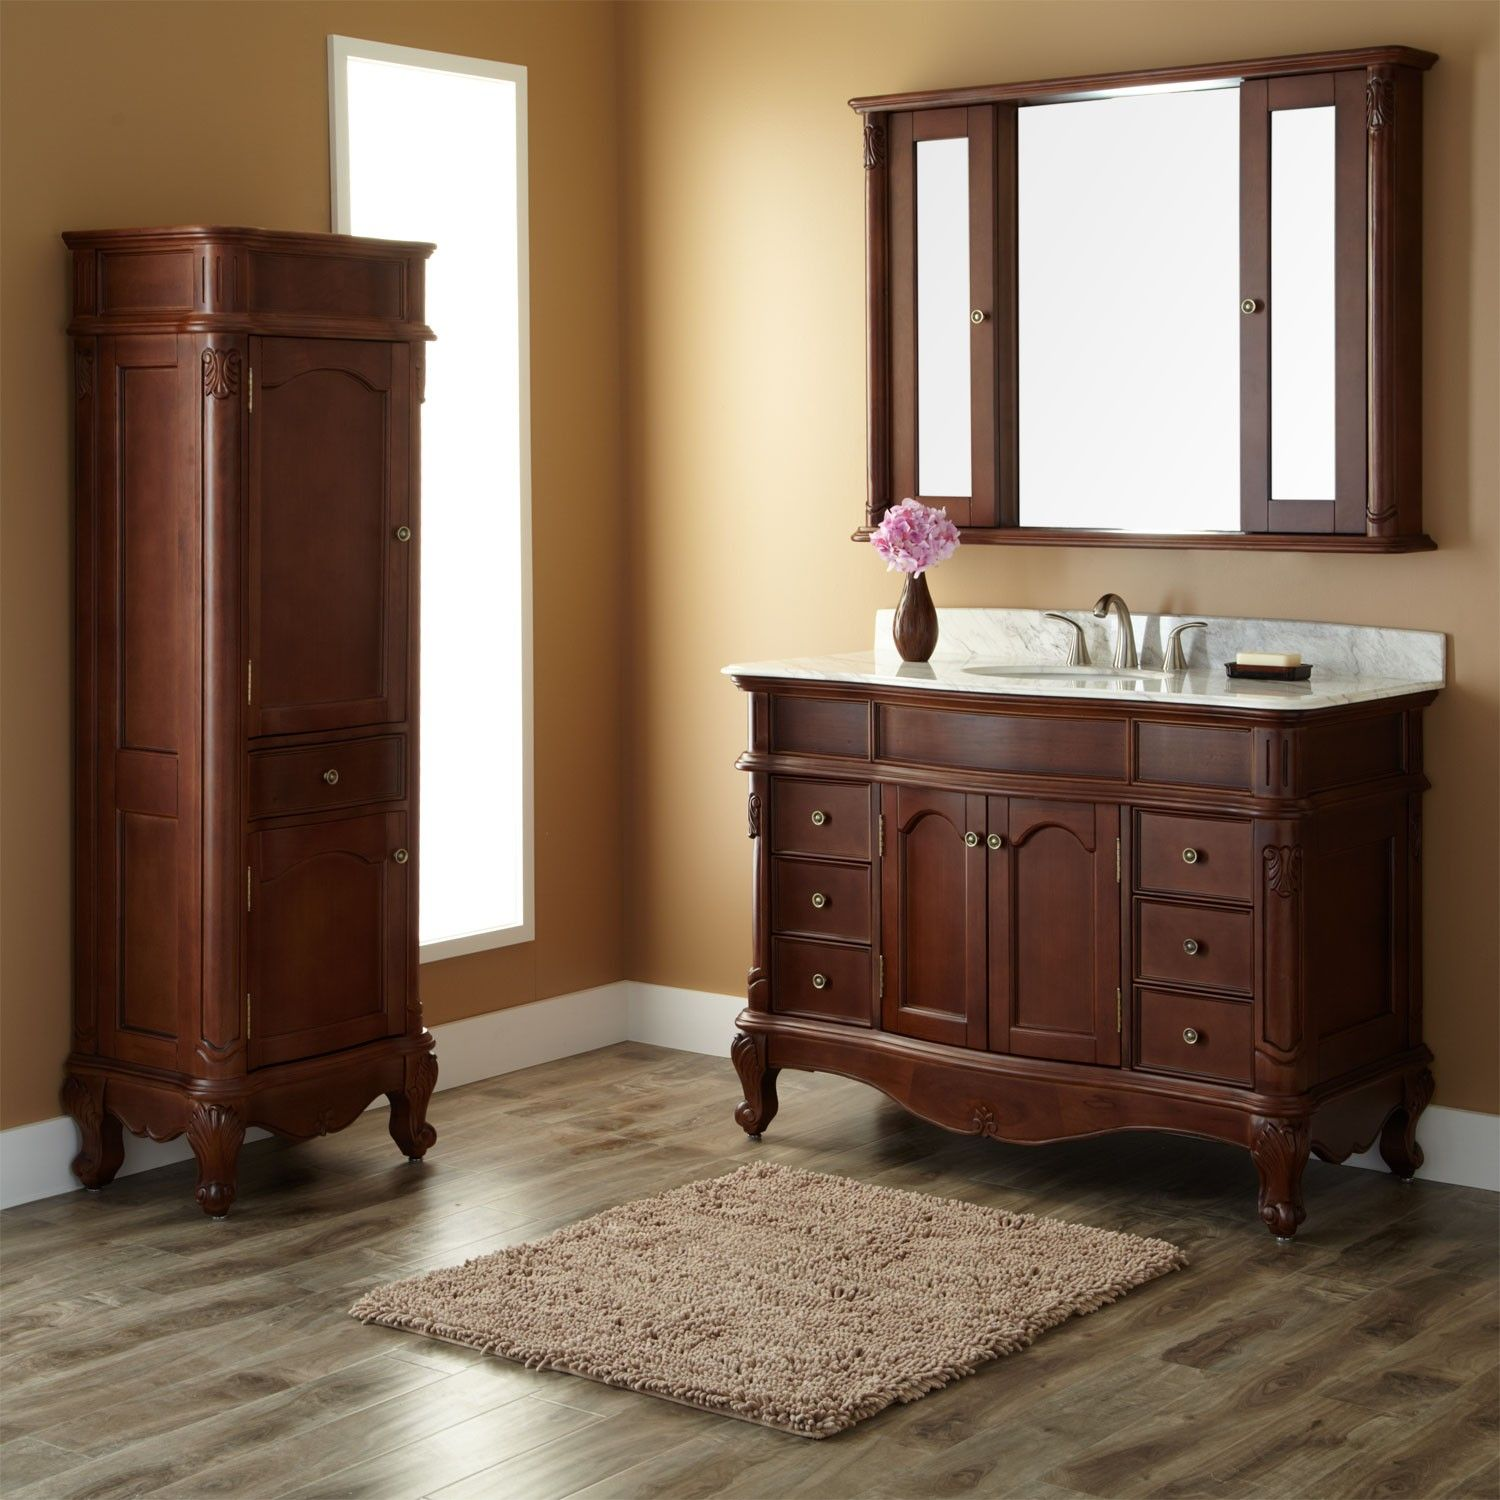 48 Quot Sedwick Brown Cherry Vanity Ideas For The House